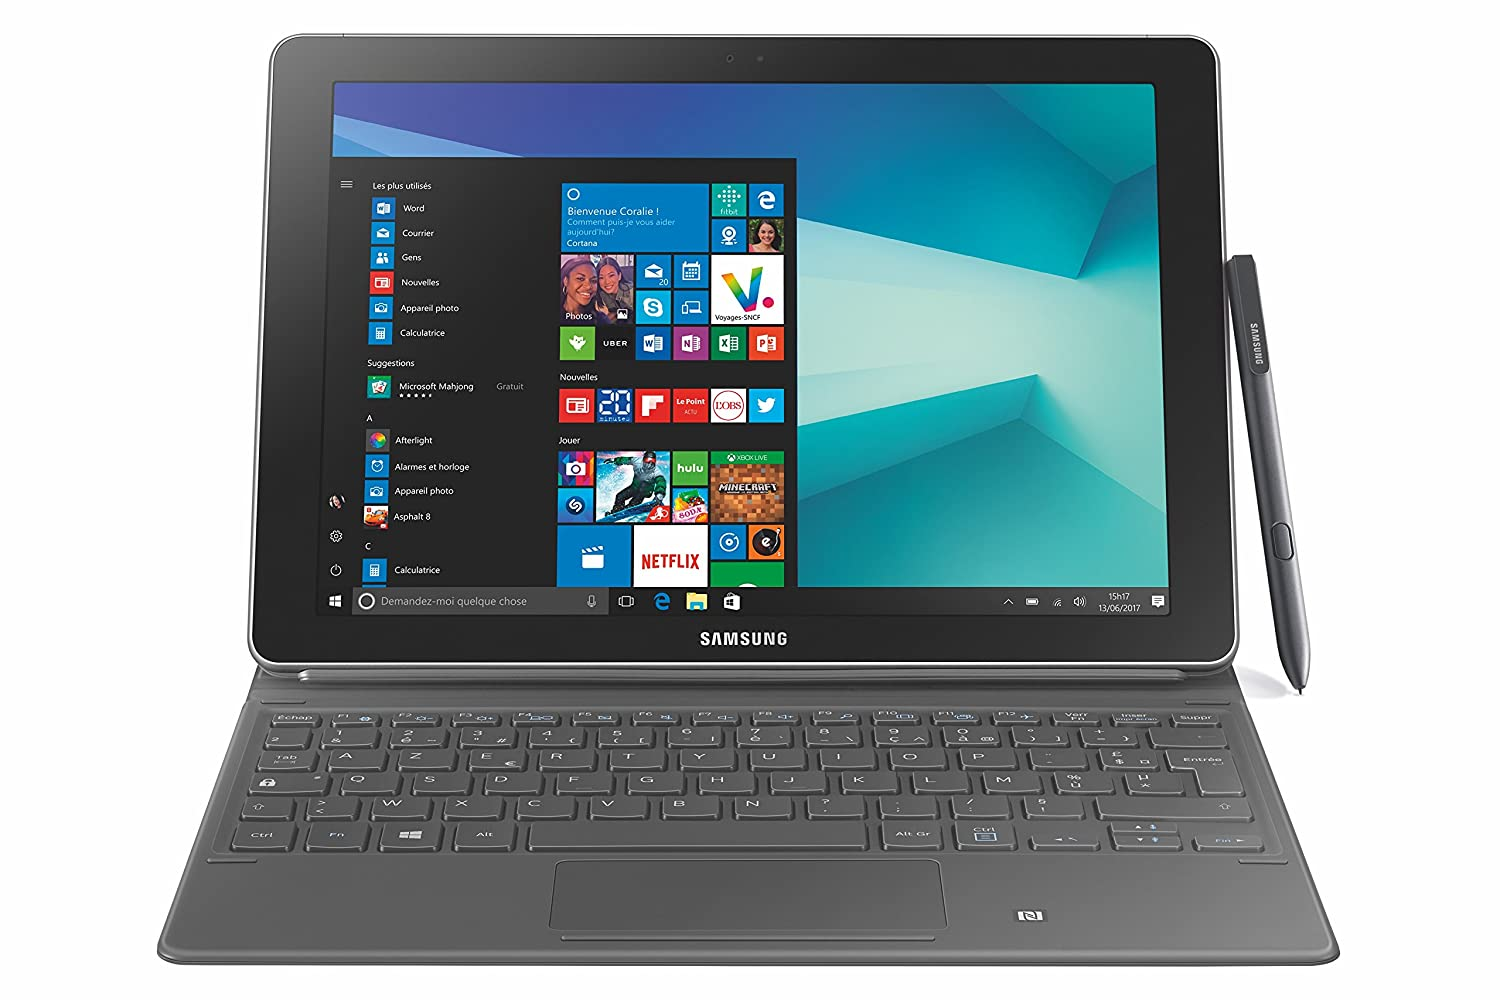 Tableta Samsung Galaxy Book Pantalla táctil Full HD 10,6